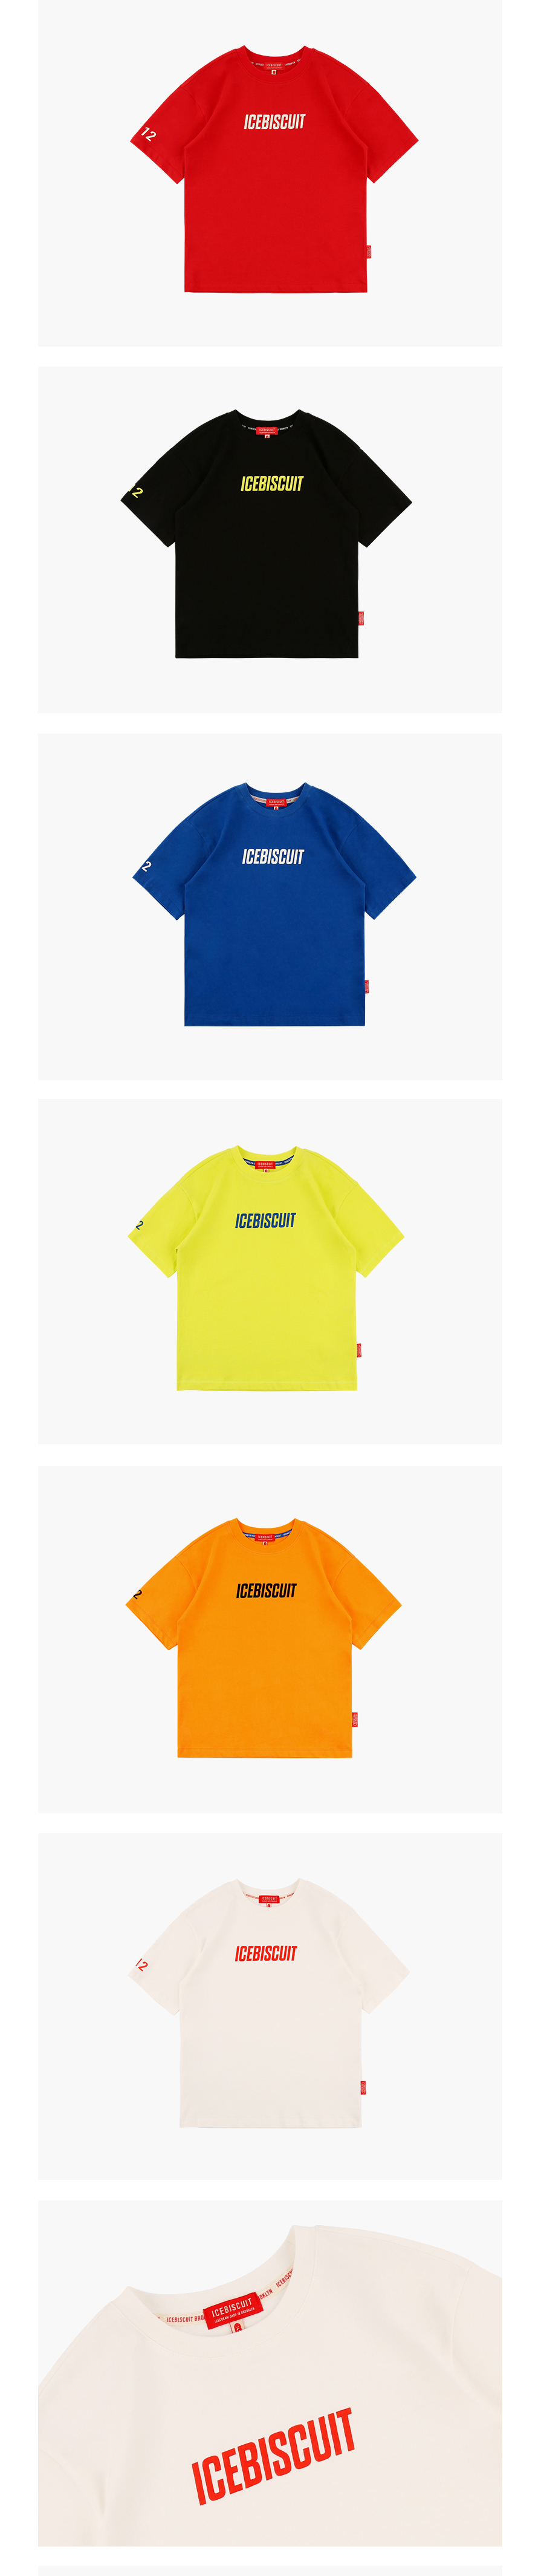 Icebiscuit logo short sleeve tee 상세 이미지